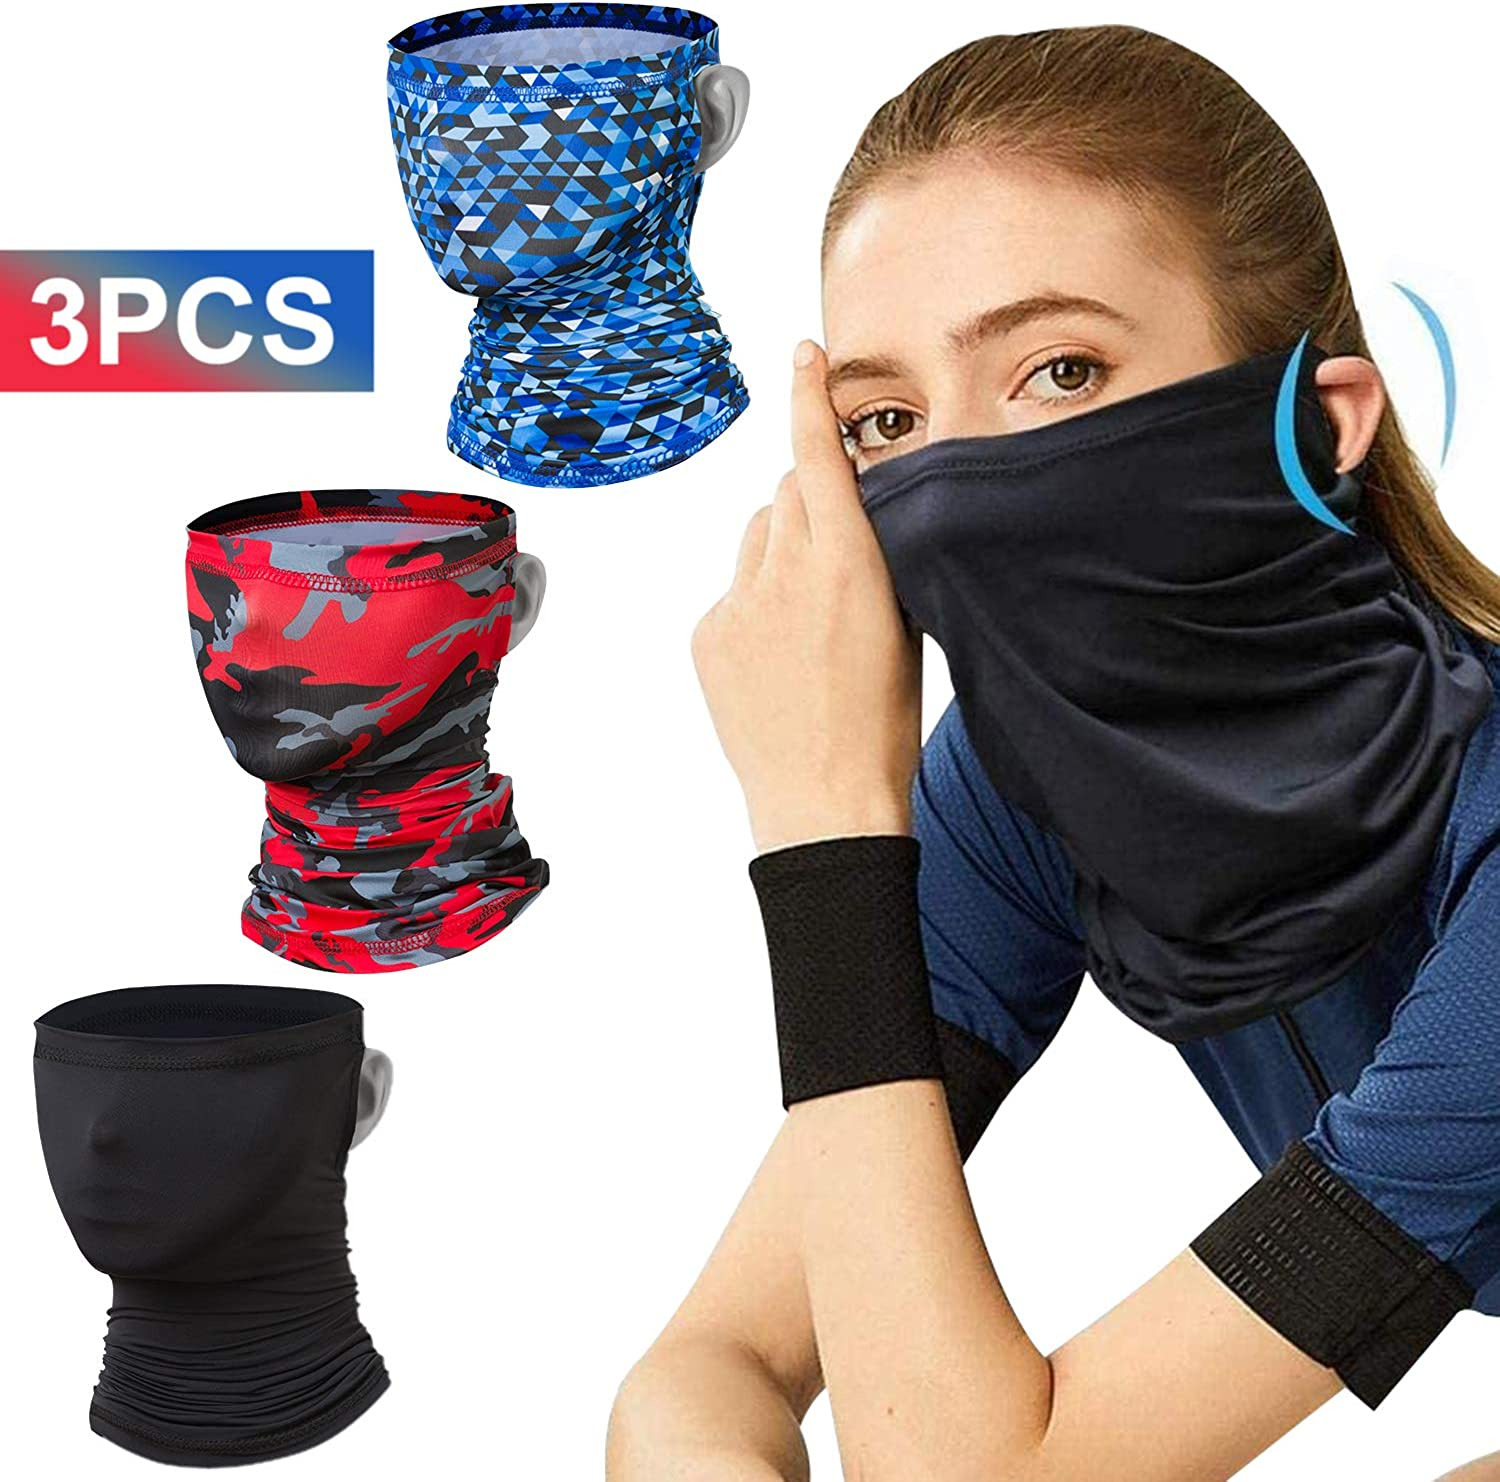 TOOVREN 3 PCS Cooling Face Cover Bandana Neck Gaiter Summer Balaclava Women/Men, Multifunctional Headwear Breathable Face Scarf for Outdoor Sport